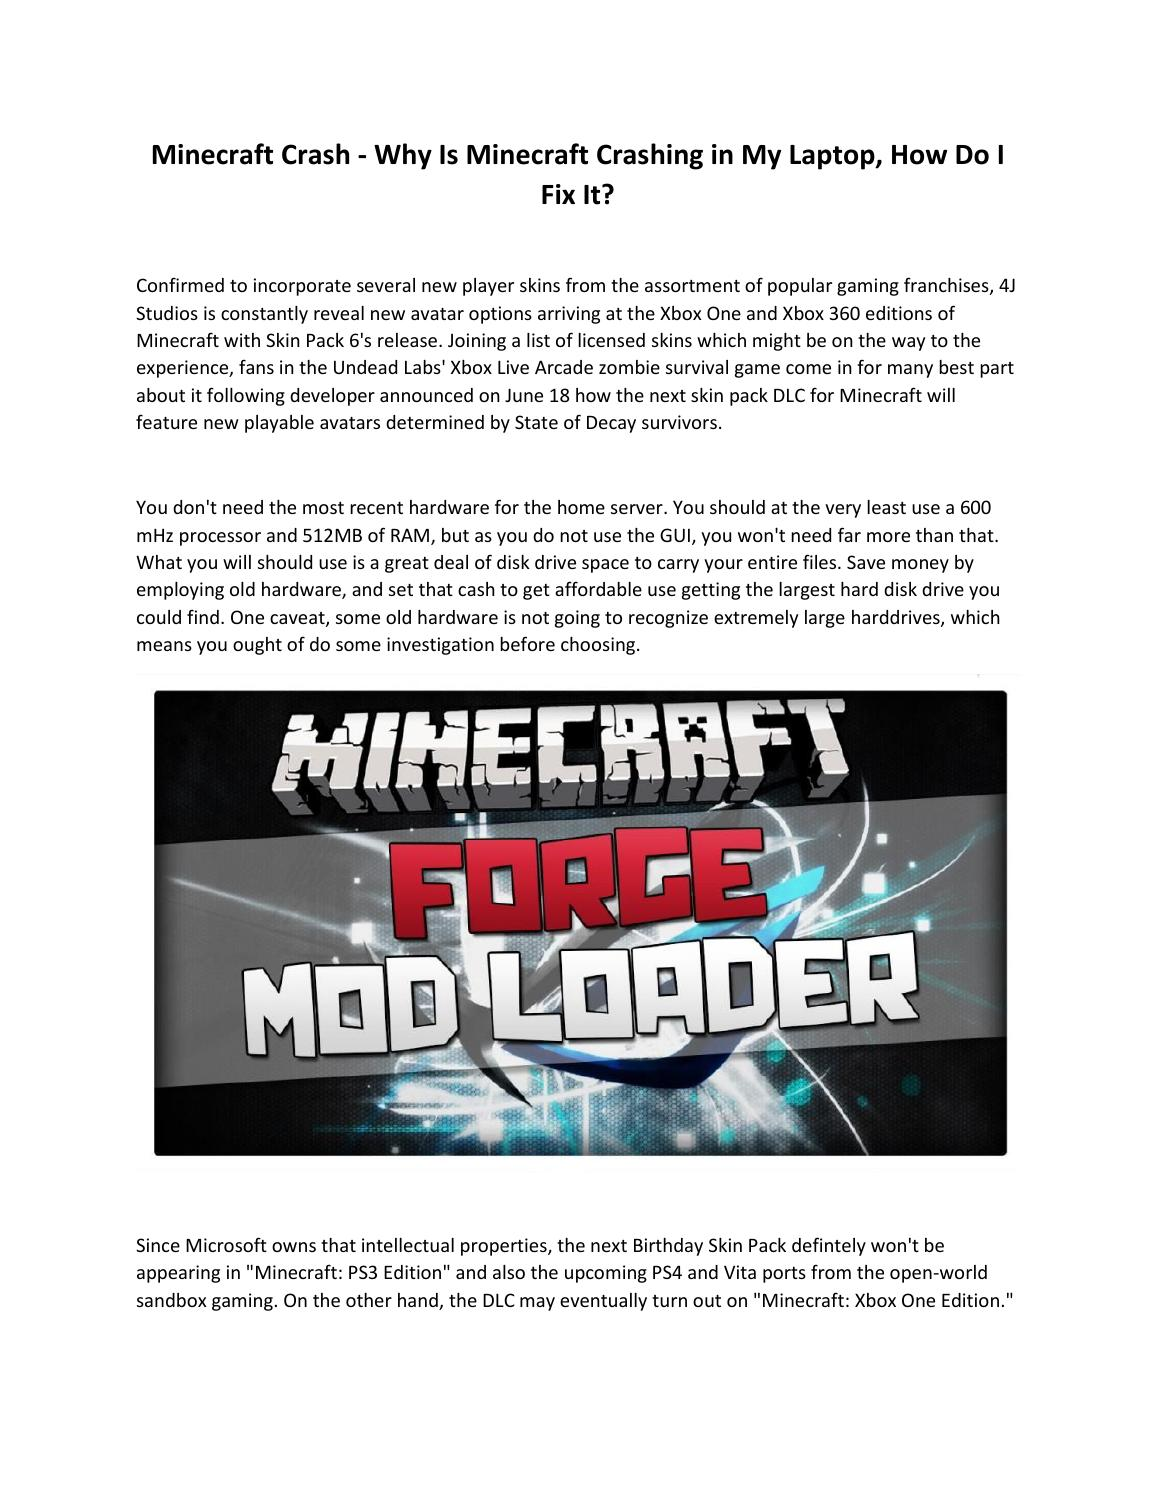 Why is minecraft crashing in my laptop by Nguyen Quang Dai - issuu